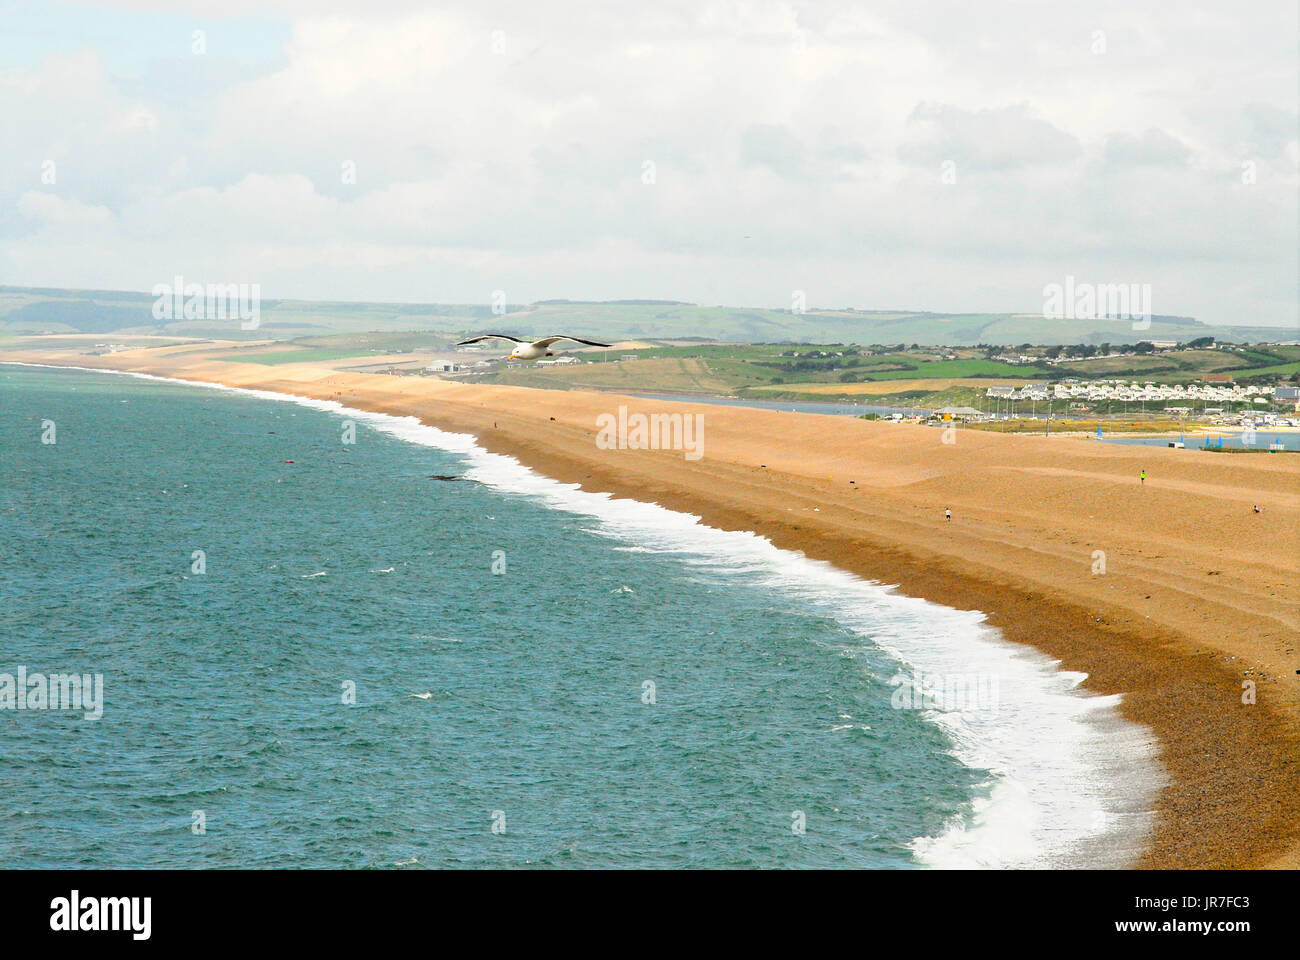 Chesil Beach, Dorset. 04th Aug, 2017. UK Weather: A seagull soars over Chesil Beach on Portand, on a day of sunny spells in Dorset Credit: stuart fretwell/Alamy Live News - Stock Image